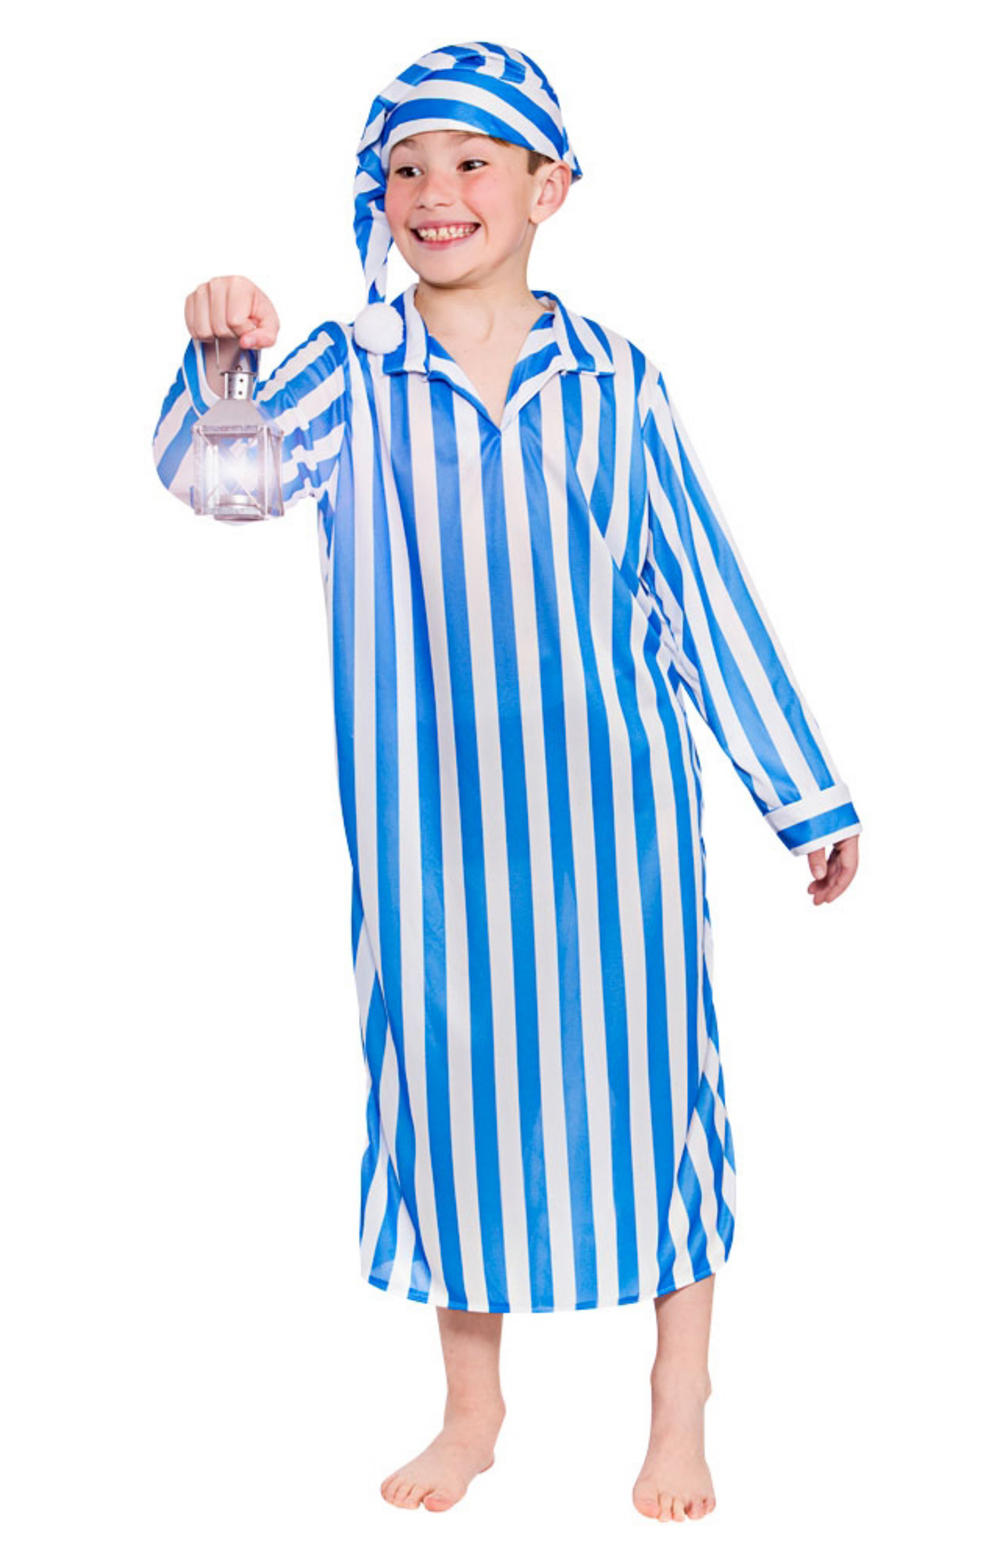 Wee Willie Winkie Costume Tv Book And Film Costumes